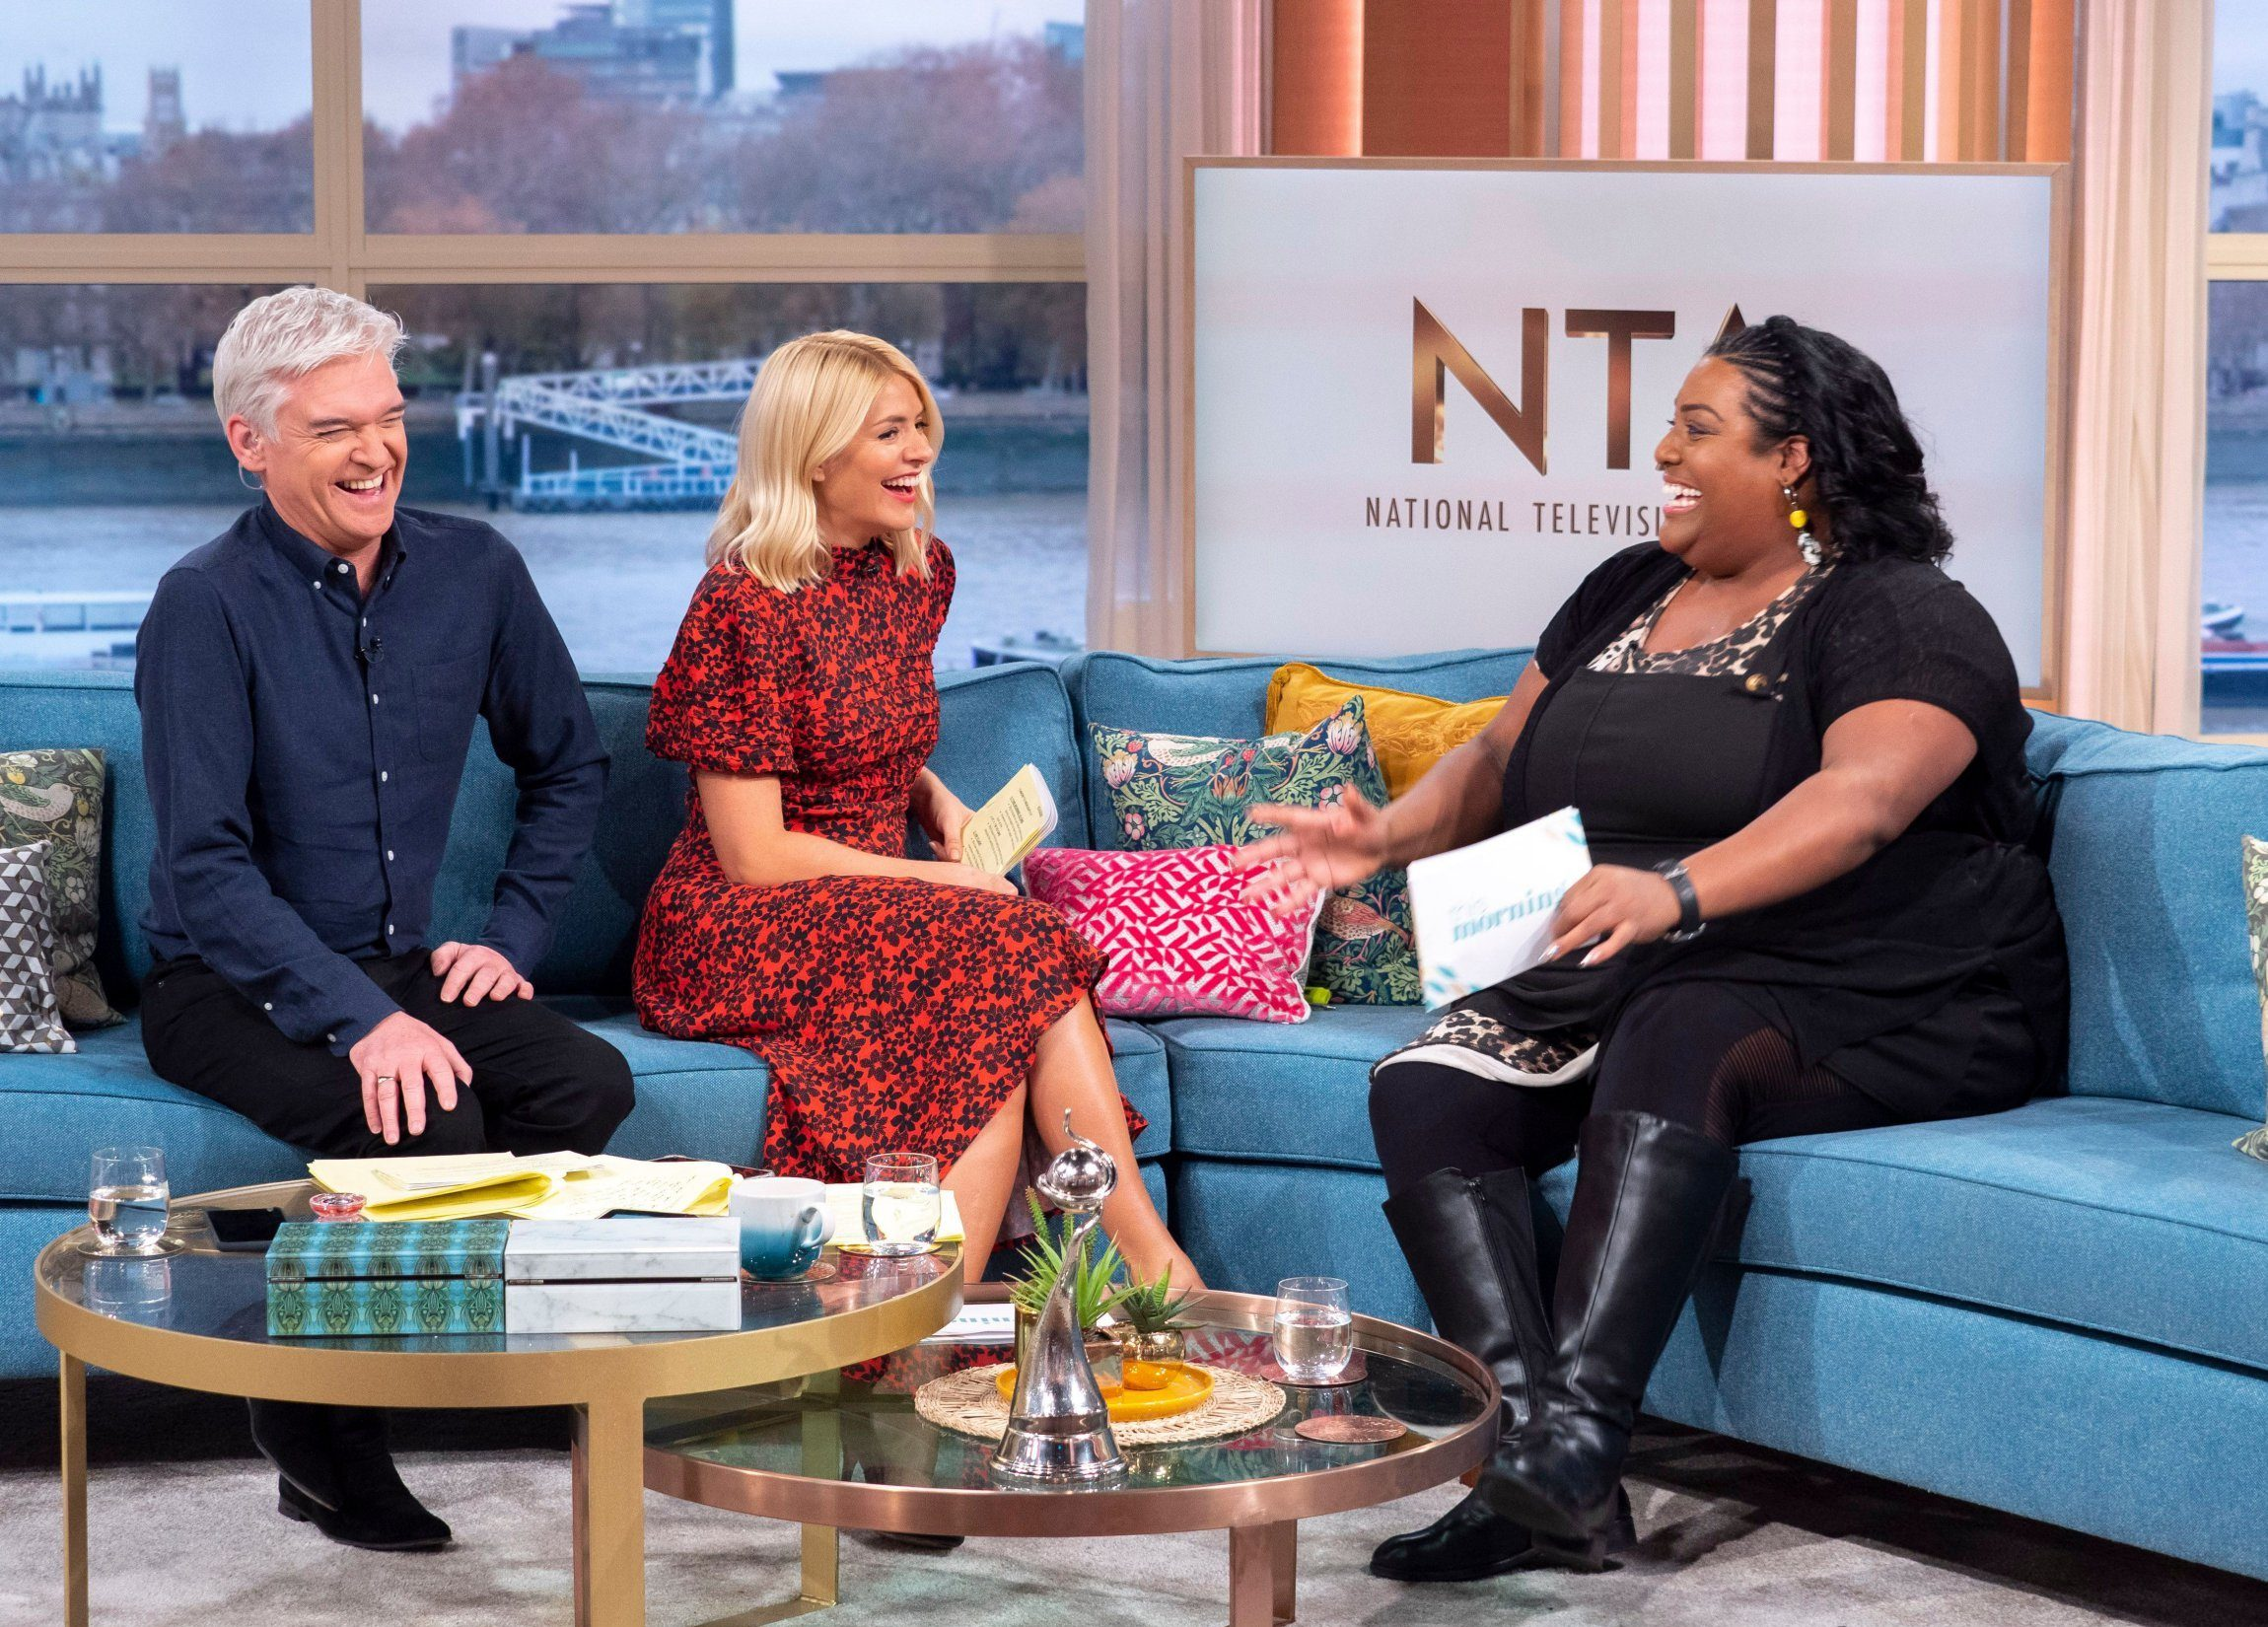 Editorial use only Mandatory Credit: Photo by Ken McKay/ITV/REX (10071238cm) Alison Hammond, Phillip Schofield and Holly Willoughby 'This Morning' TV show, London, UK - 23 Jan 2019